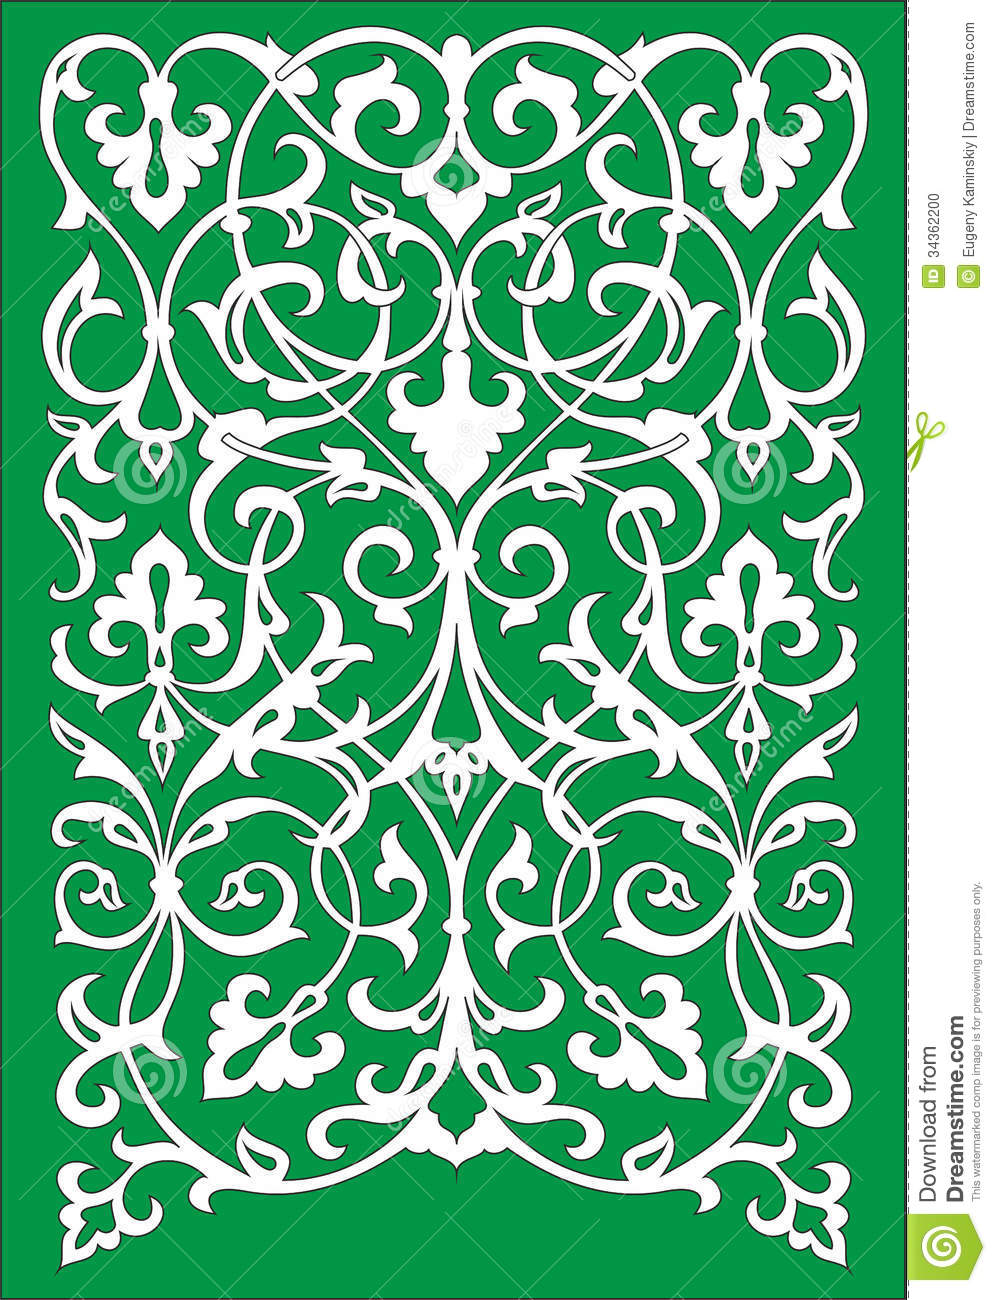 Islamic Floral Pattern Motif Stock Vector - Image: 34362200